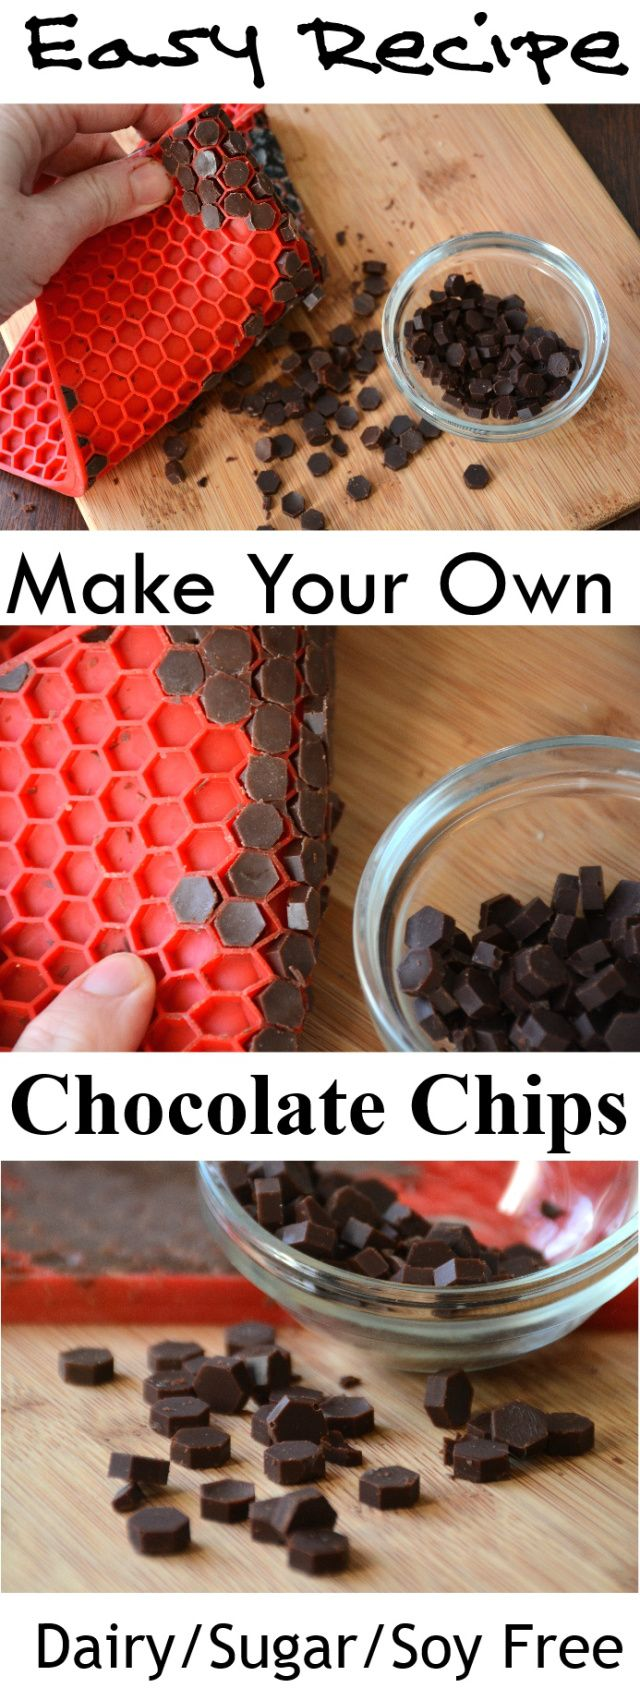 This is your #6 Top Pin in the Vegan Community Board in April: Make Your Own Chocolate Chips- Paleo - Vegan - sugar free - 325 re-pins!!! (You voted with yor re-pins). Congratulations @petiteallergy ! Vegan Community Board https://www.pinterest.com/heidrunkarin/vegan-community